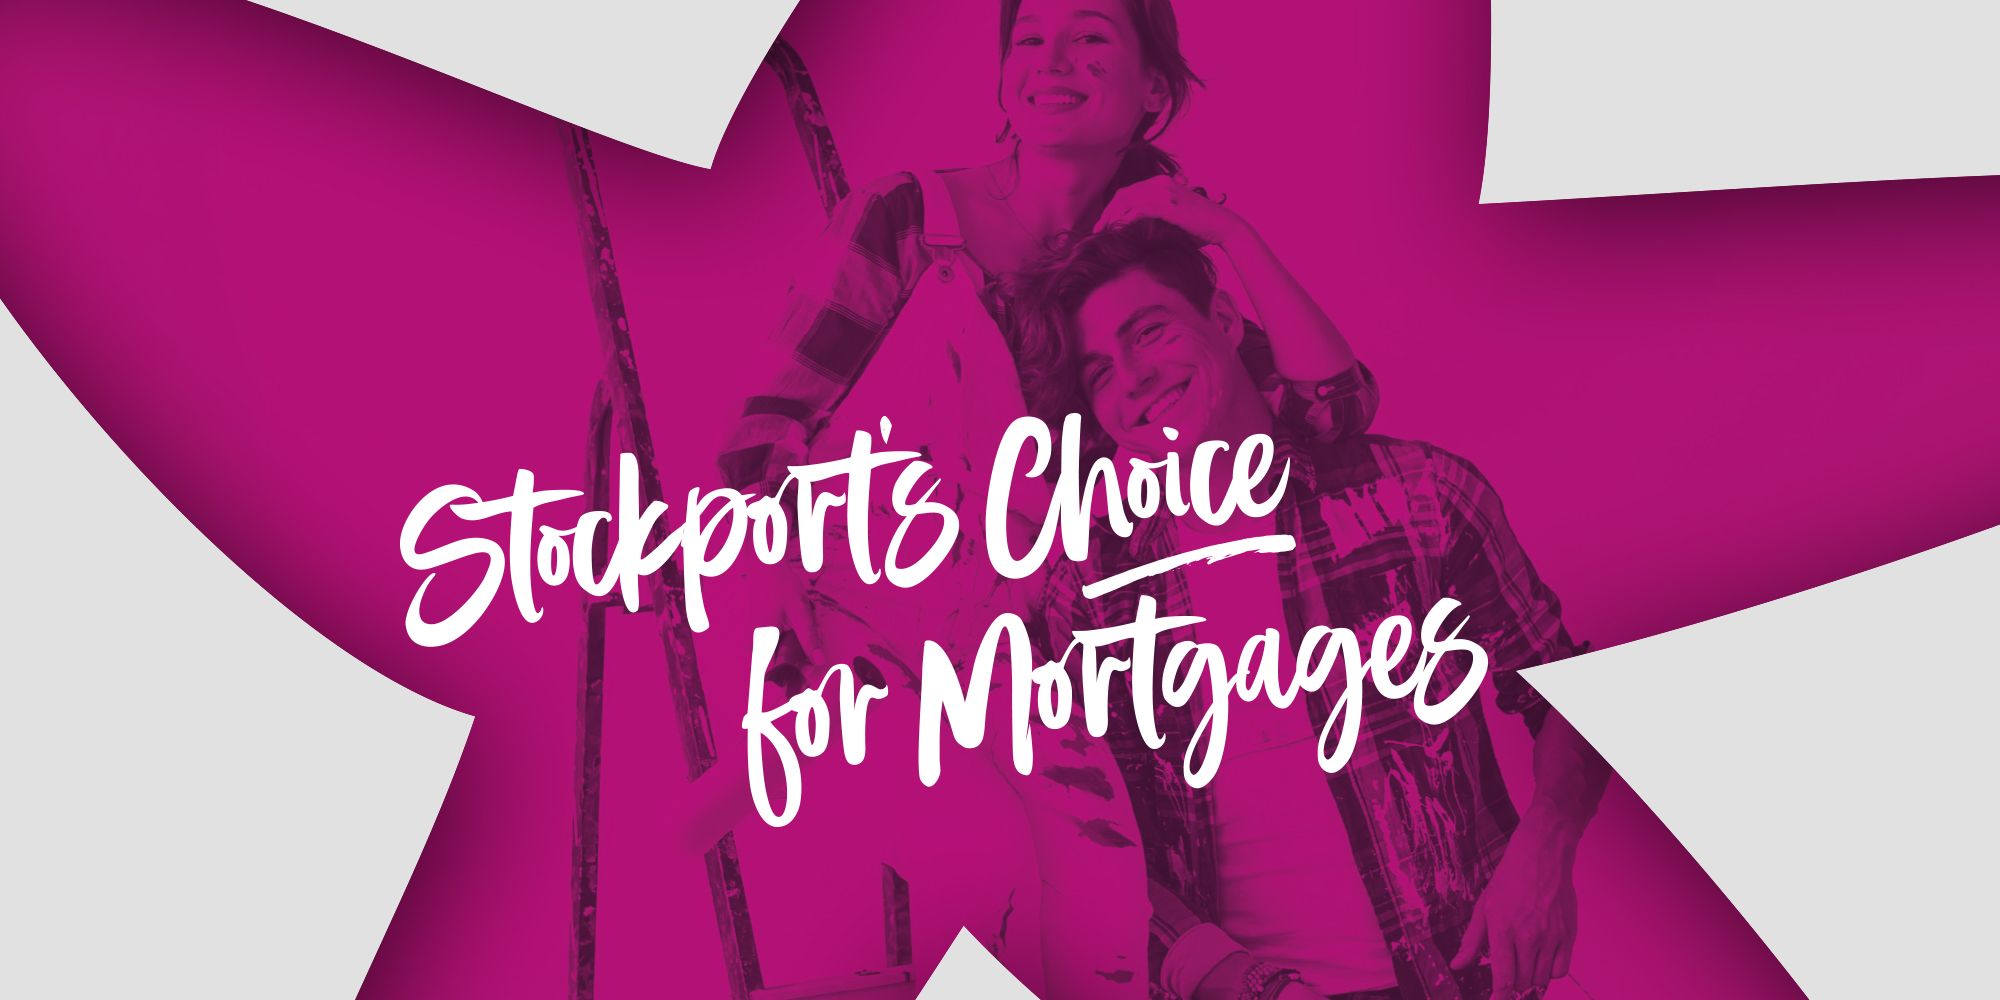 Stockport Choice-Mortgage